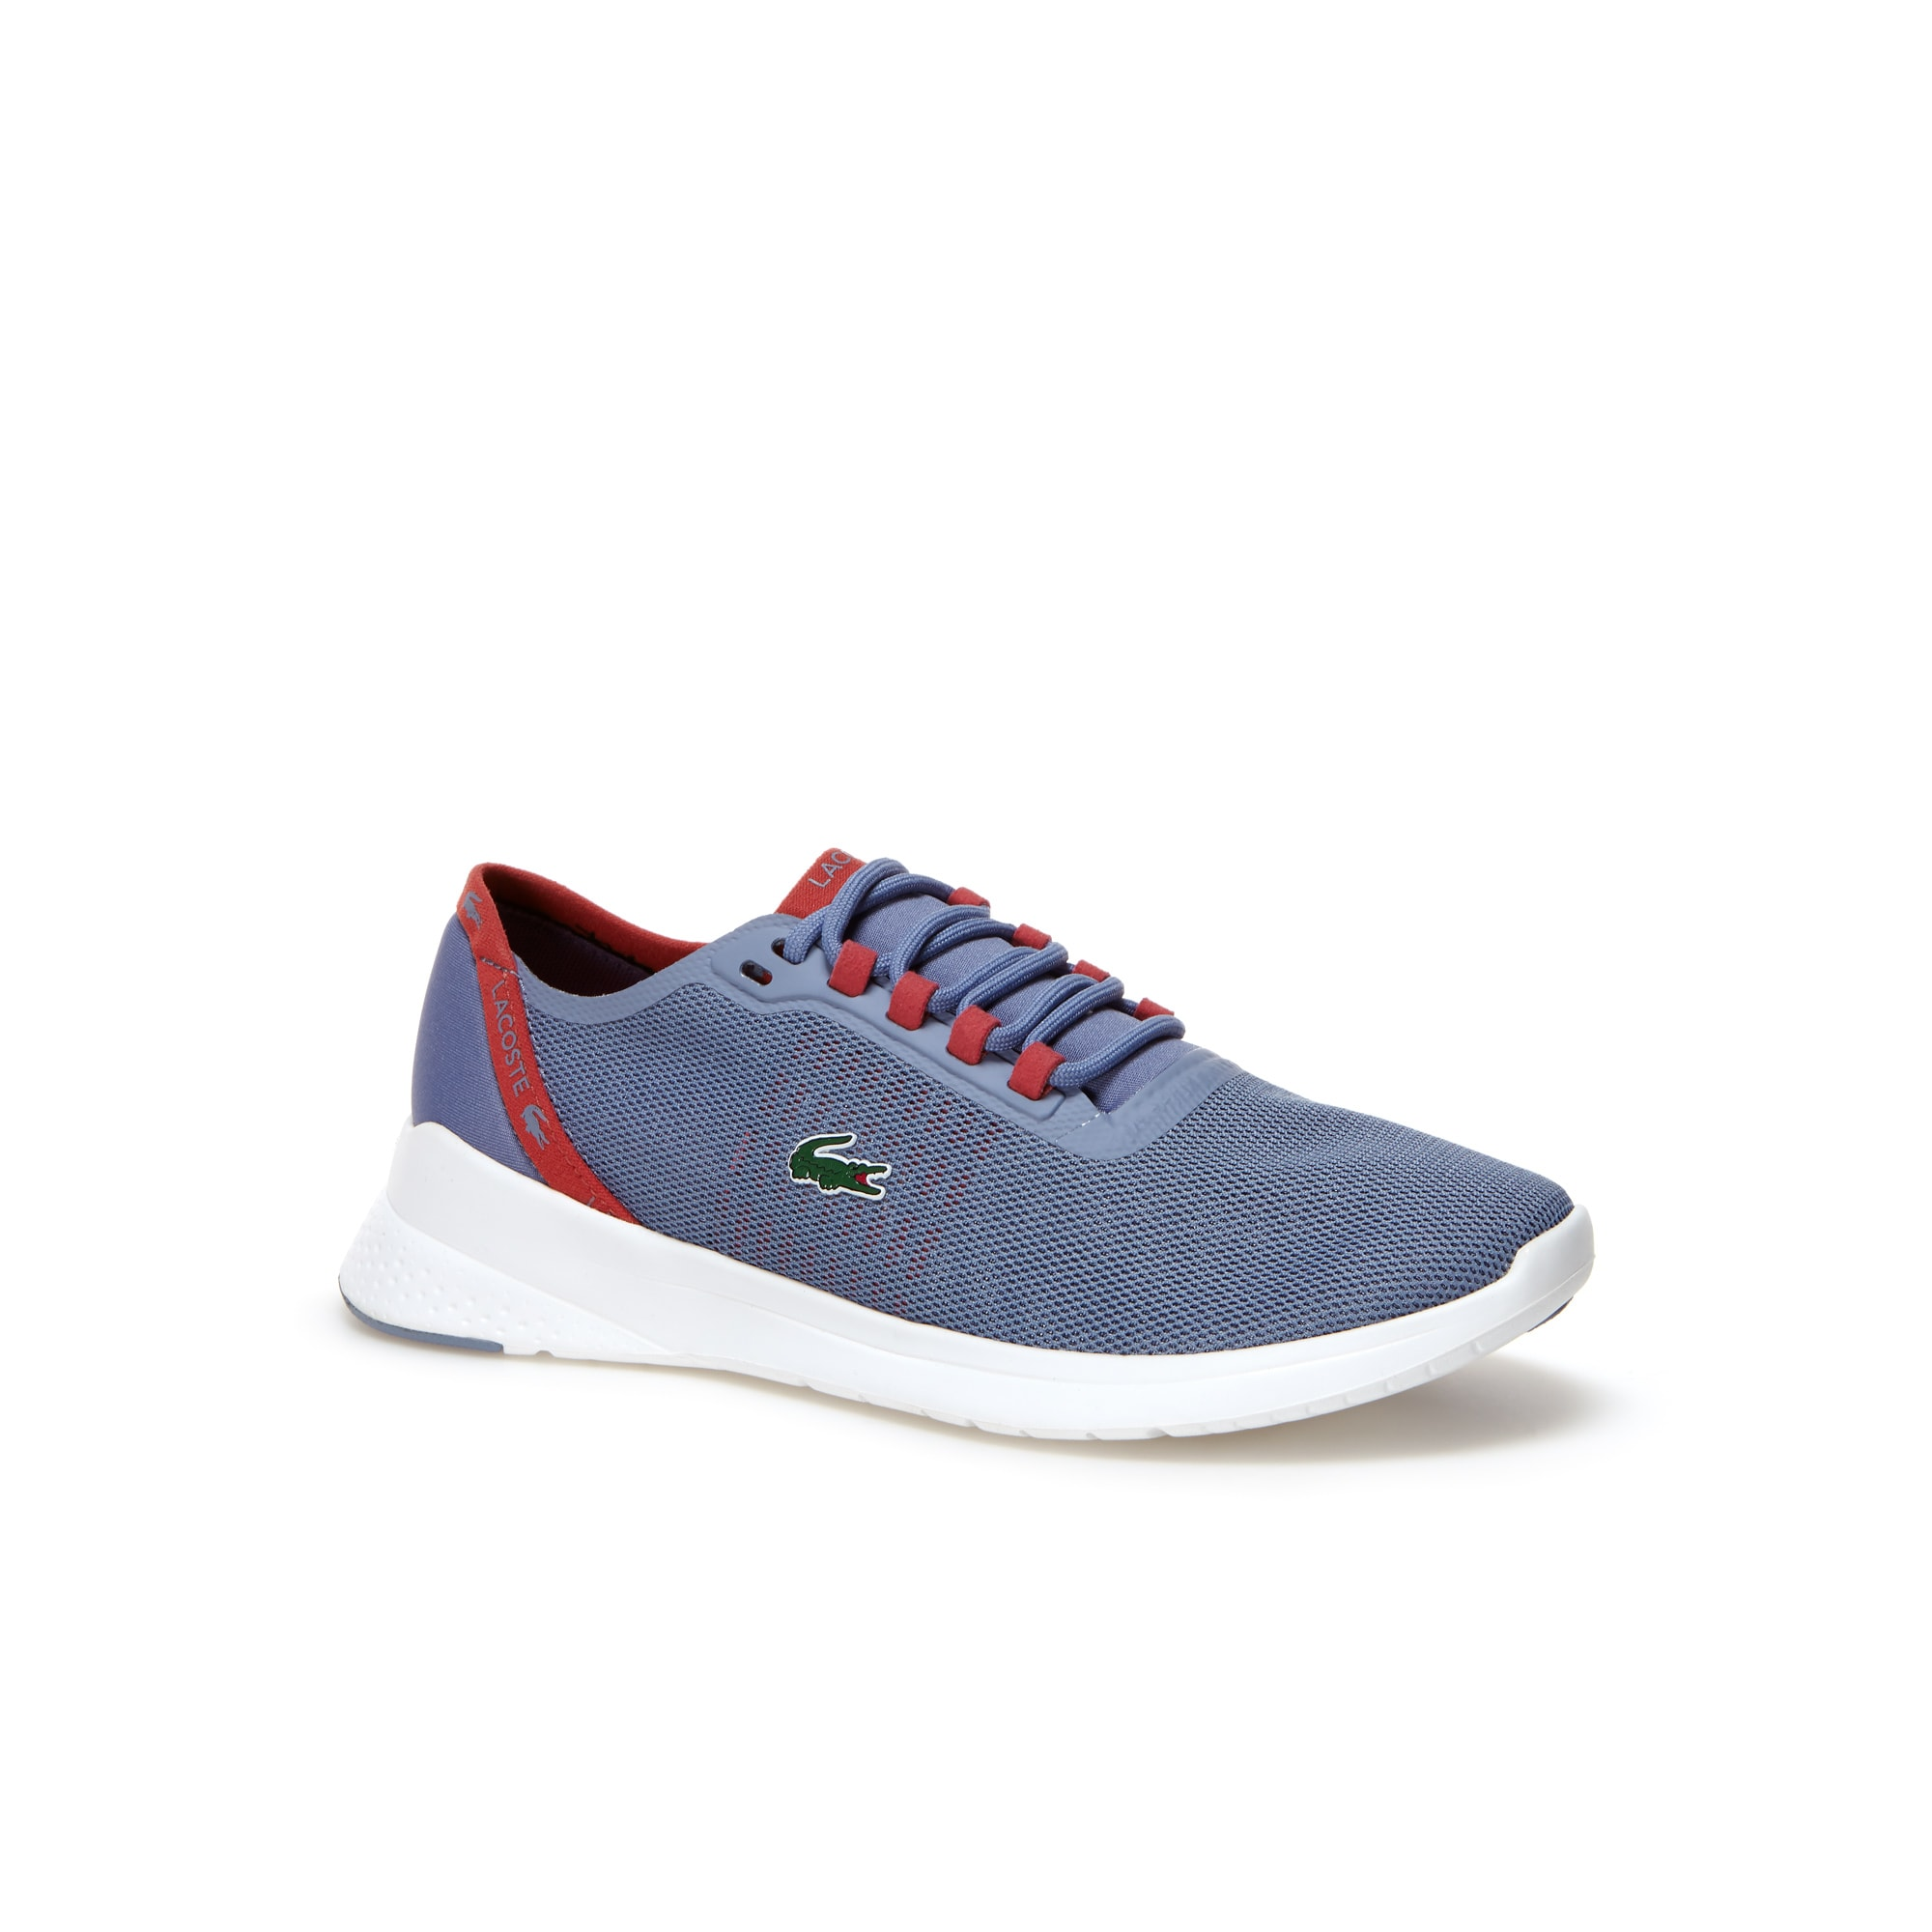 Women's LT Fit Technical Mesh Trainers